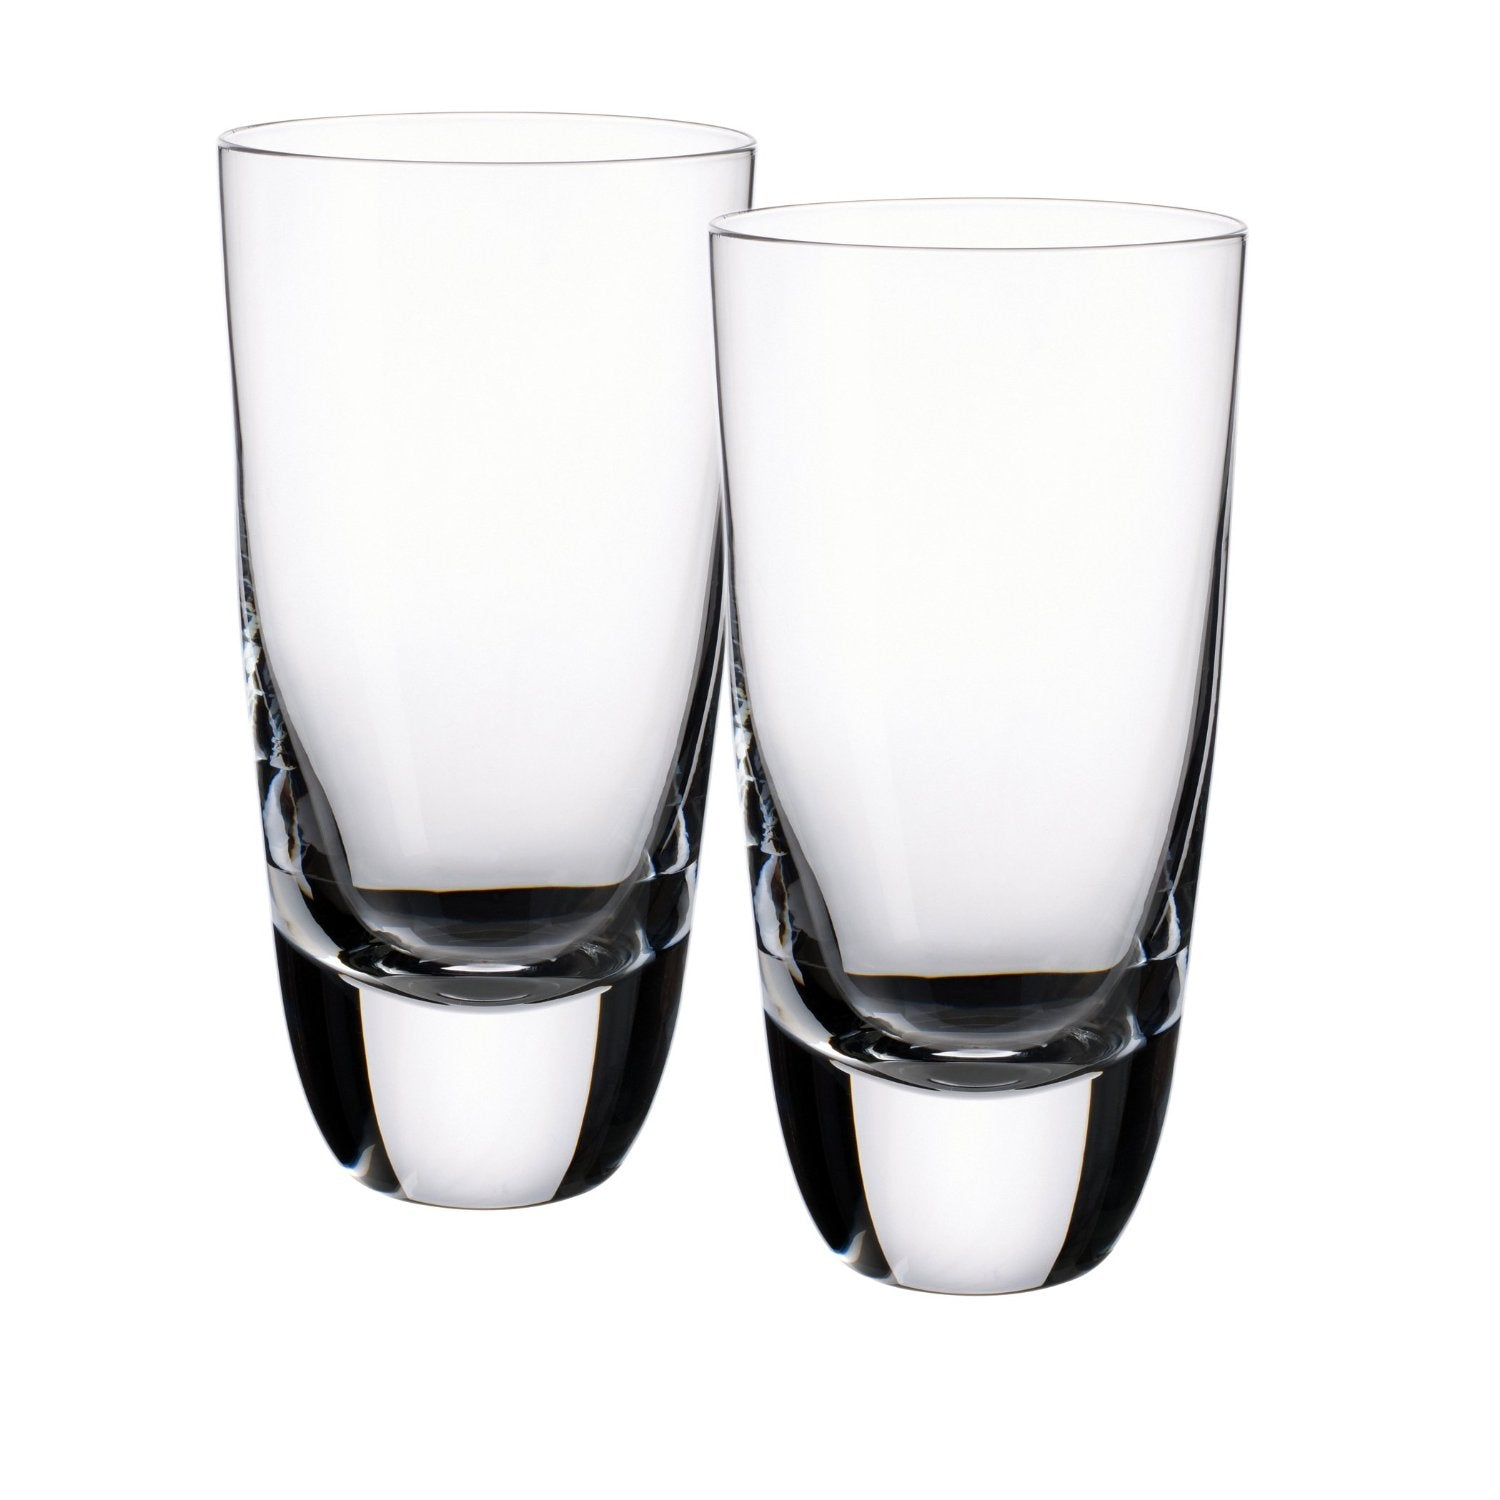 Villeroy & Boch American Bar Straight Bourbon 6 Inch Hiball Tumbler, Set of 2